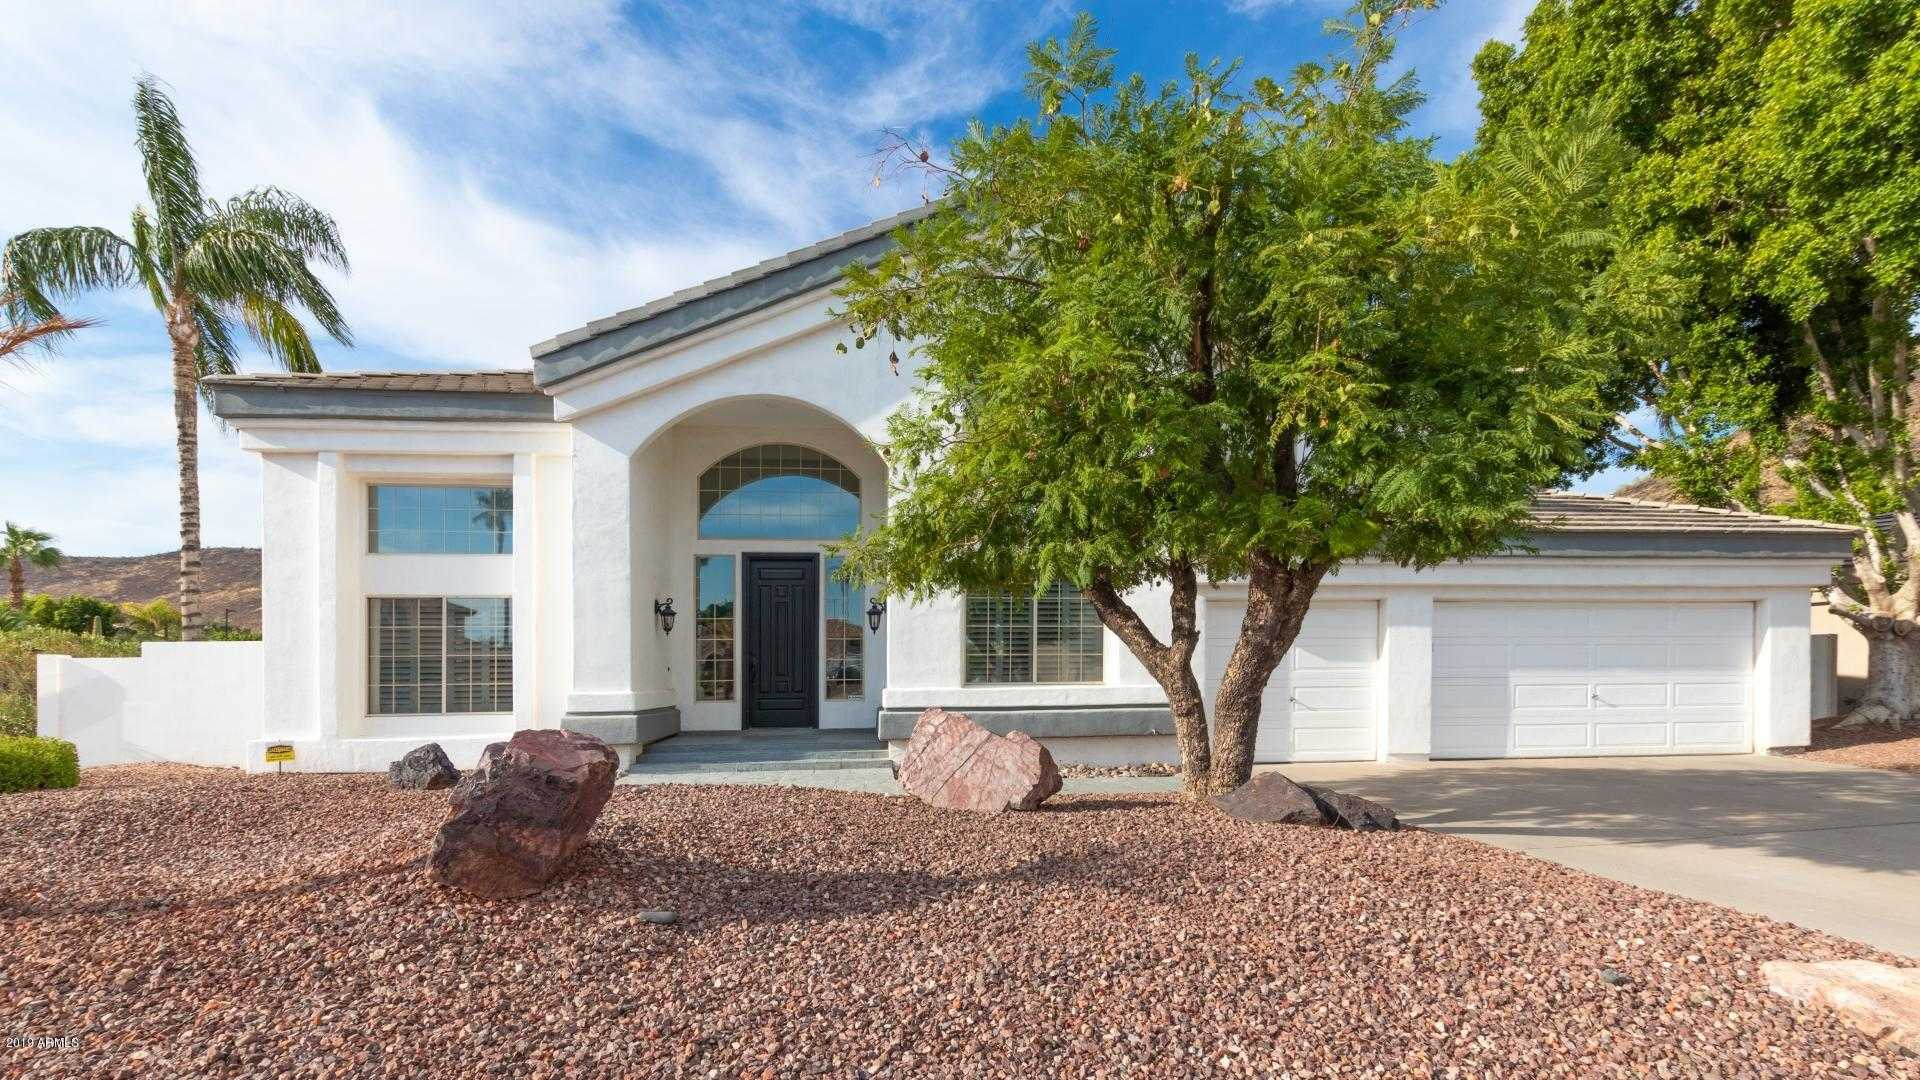 $675,000 - 3Br/3Ba - Home for Sale in Arrowhead Lakes Unit 6a Amd, Glendale